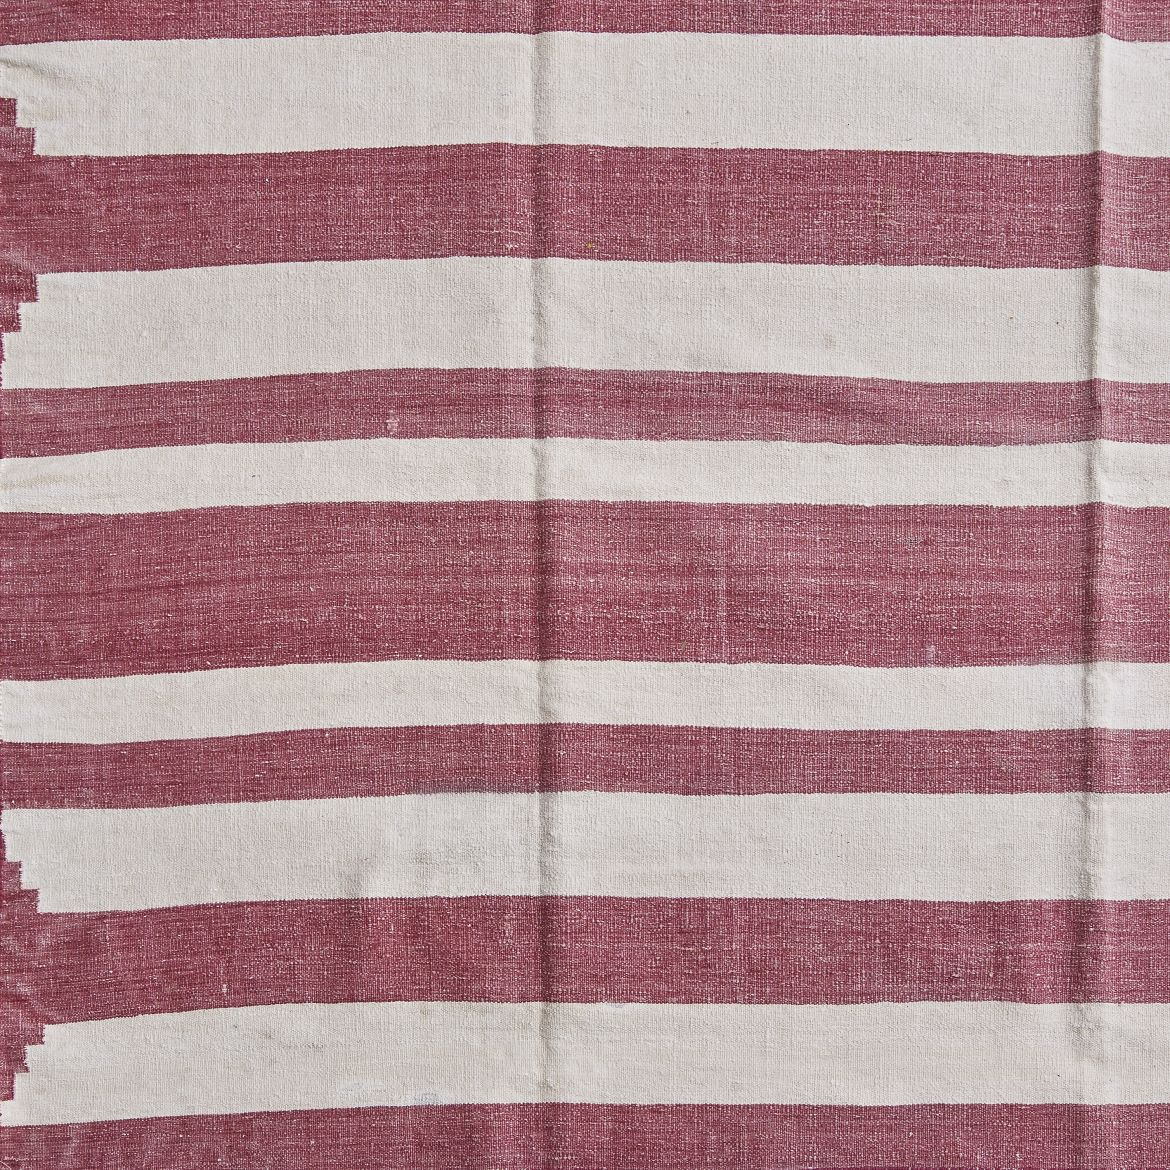 Uneven Red And White Striped Dhurrie